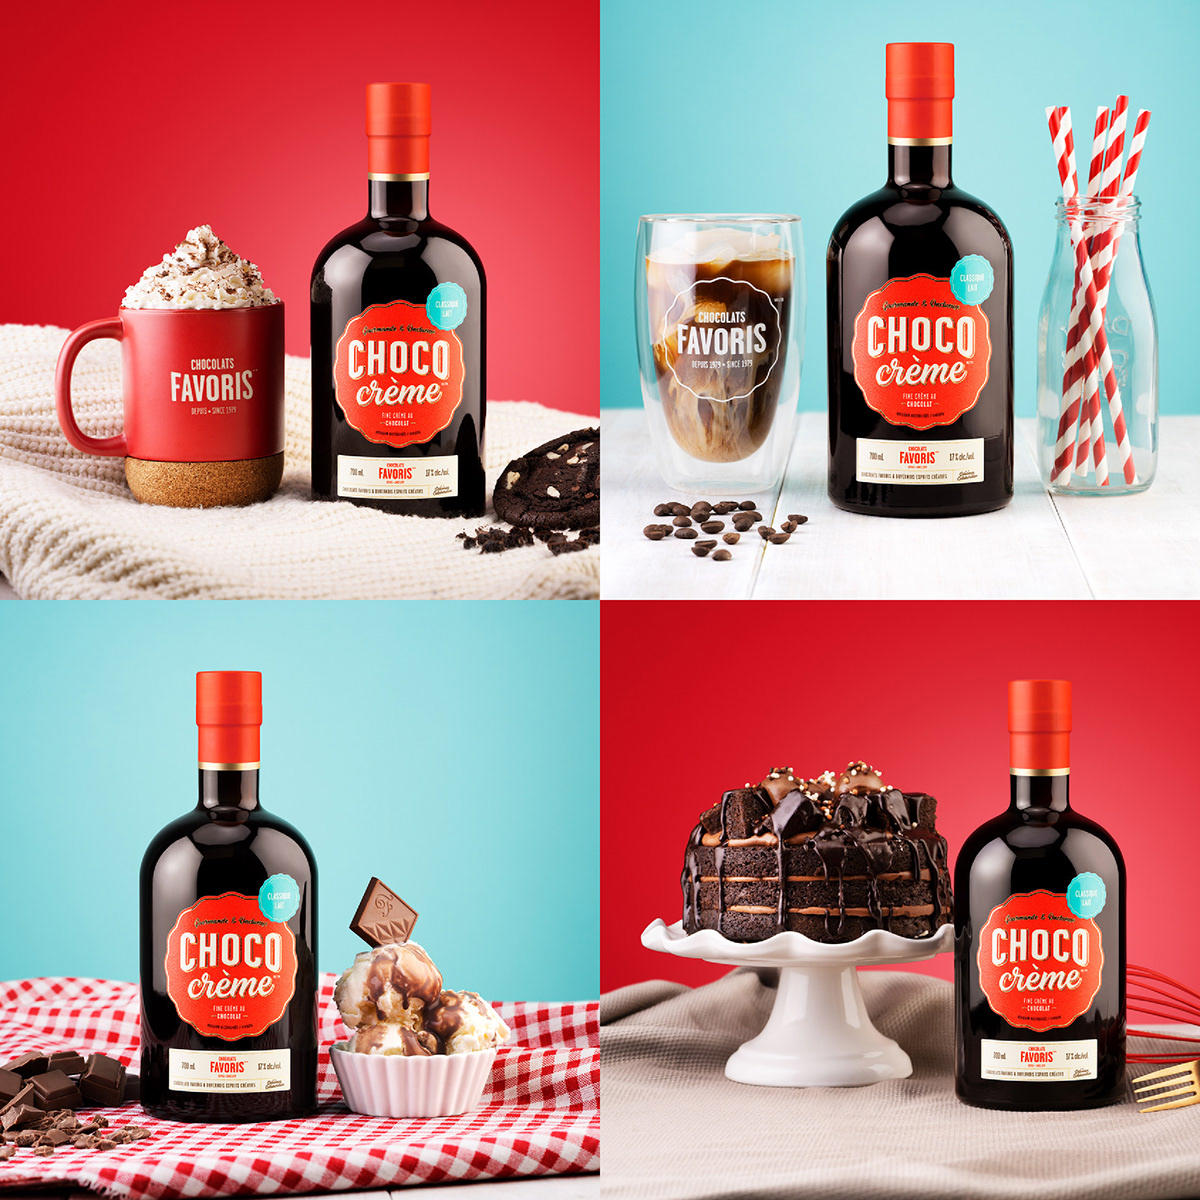 Chocolats FavorisandDuvernois Creative Spiritsjoin forces to offer you Choco Crème